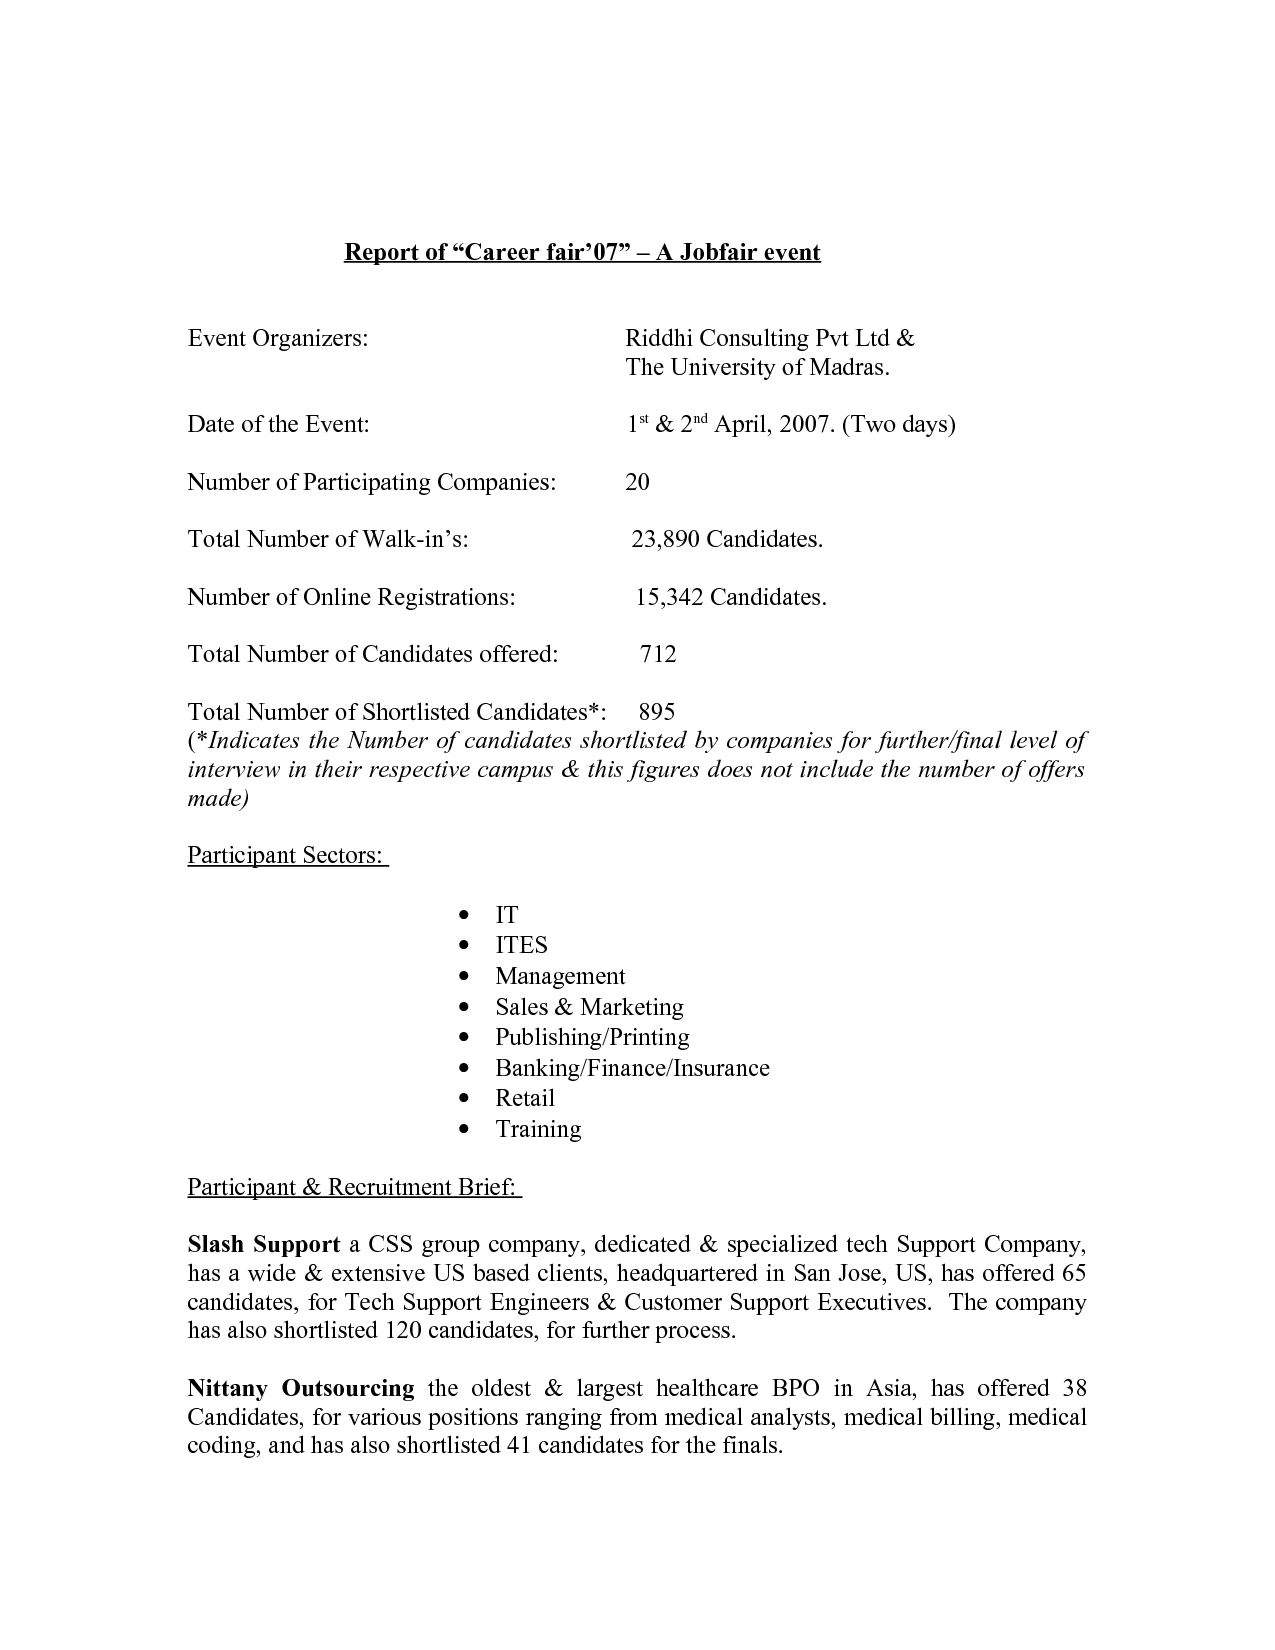 Resume Format For Freshers Free Download Resume Format For Freshers Free  Download, Resume Format For  How To Download A Resume